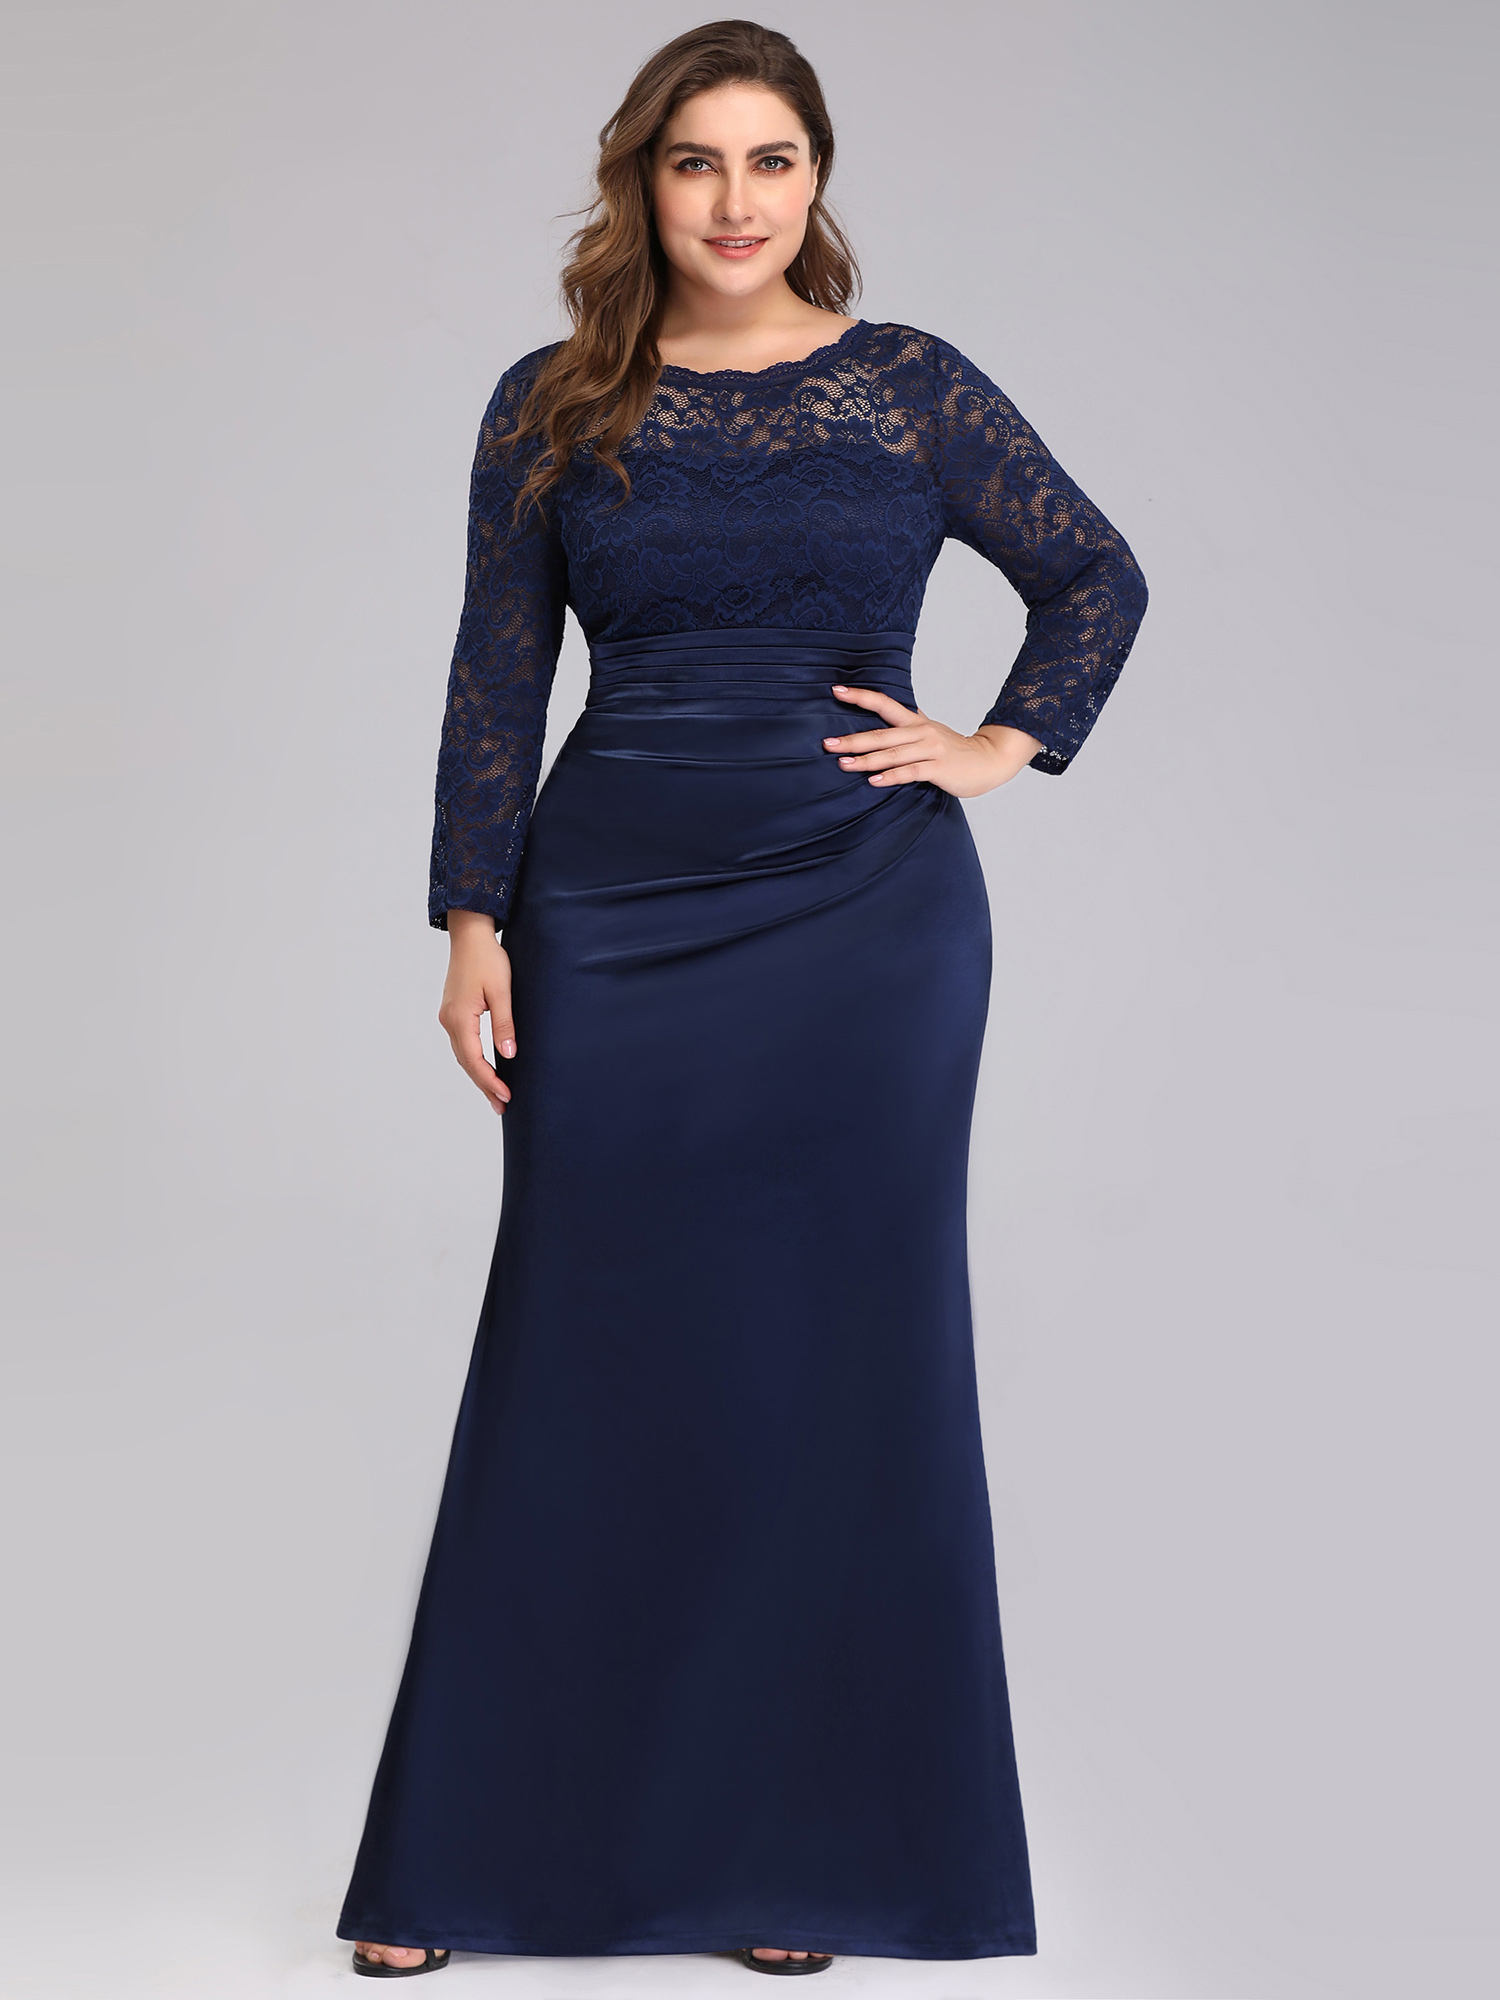 eb42616f0b1c2 Ever-Pretty Womens Plus Size Lace Long Sleeve Navy Blue Formal Evening Prom  Party Dress